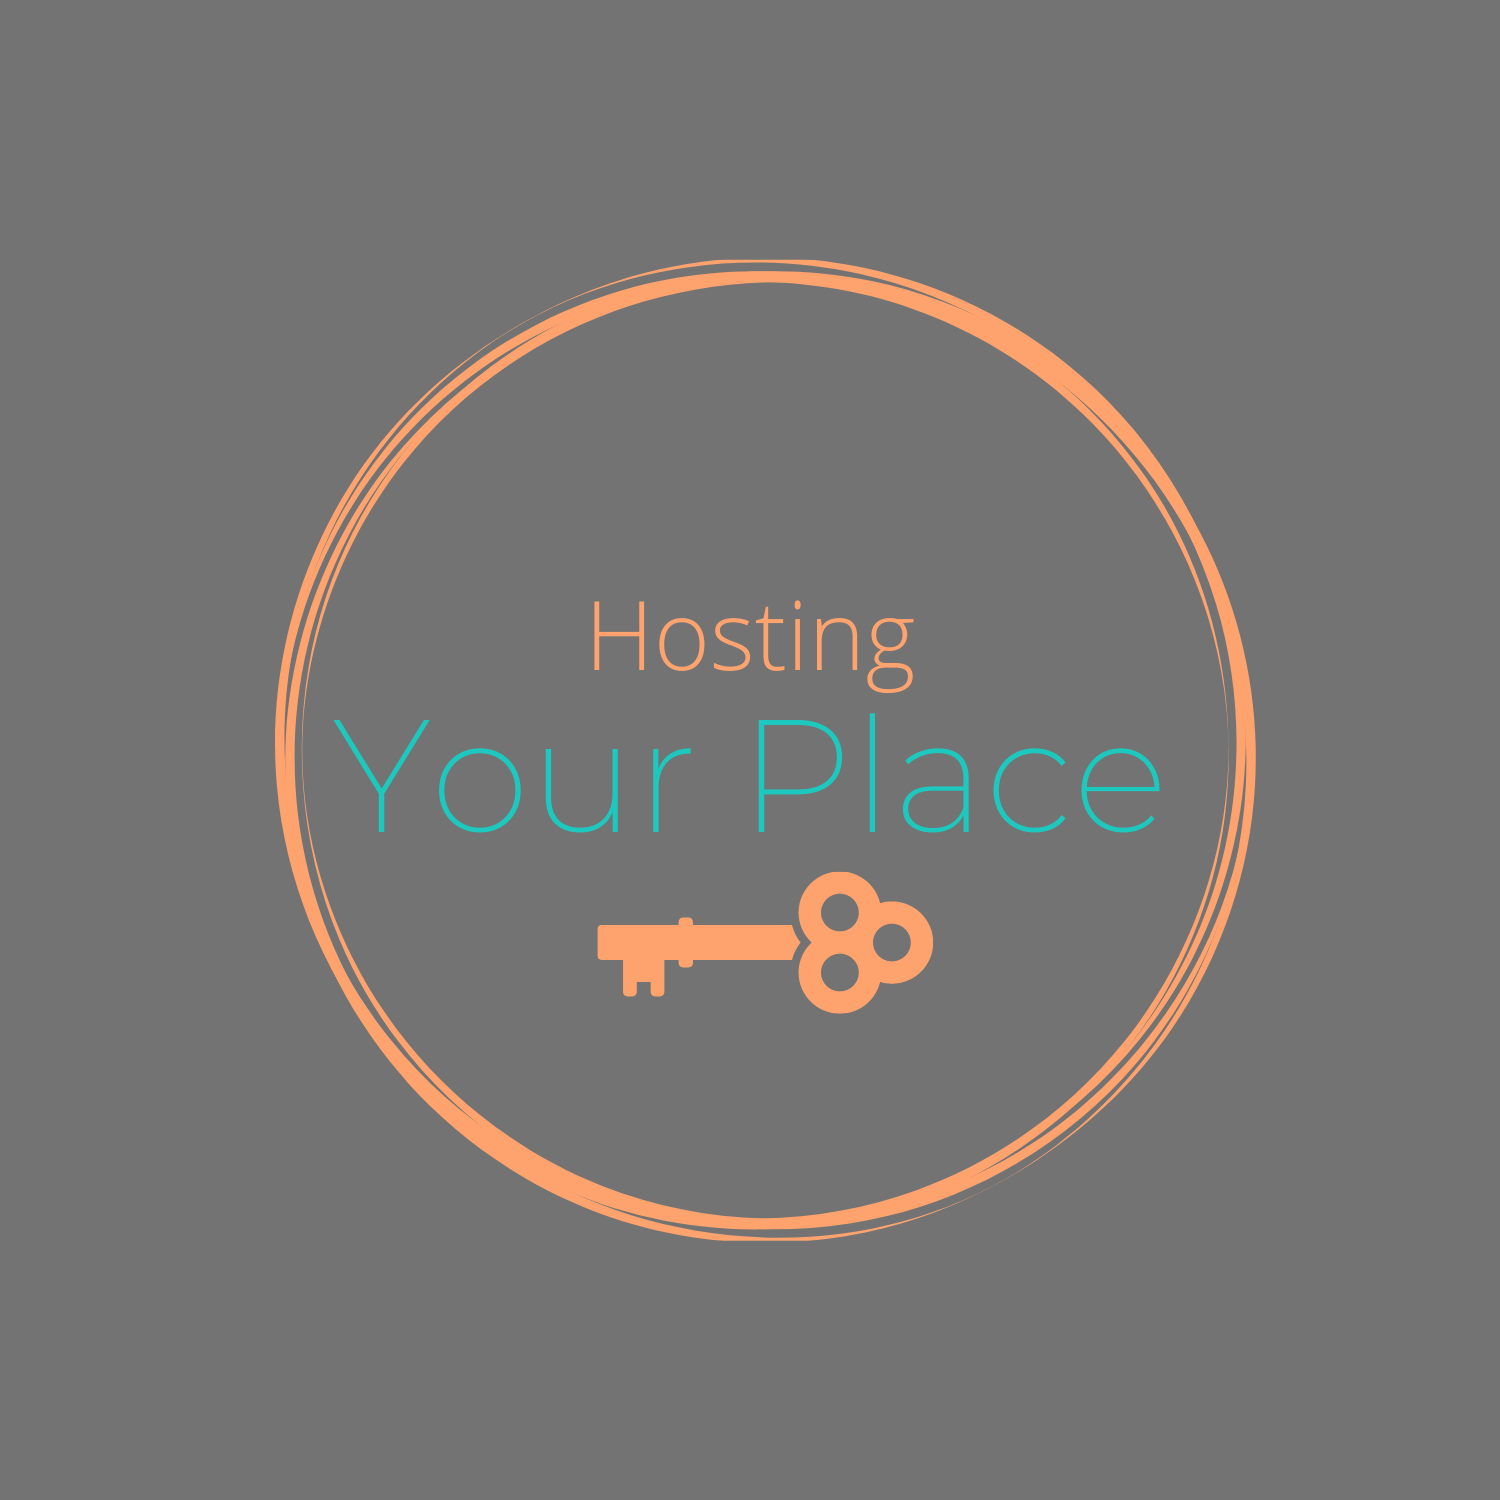 Hosting Your Place - Your Place Solutions Services